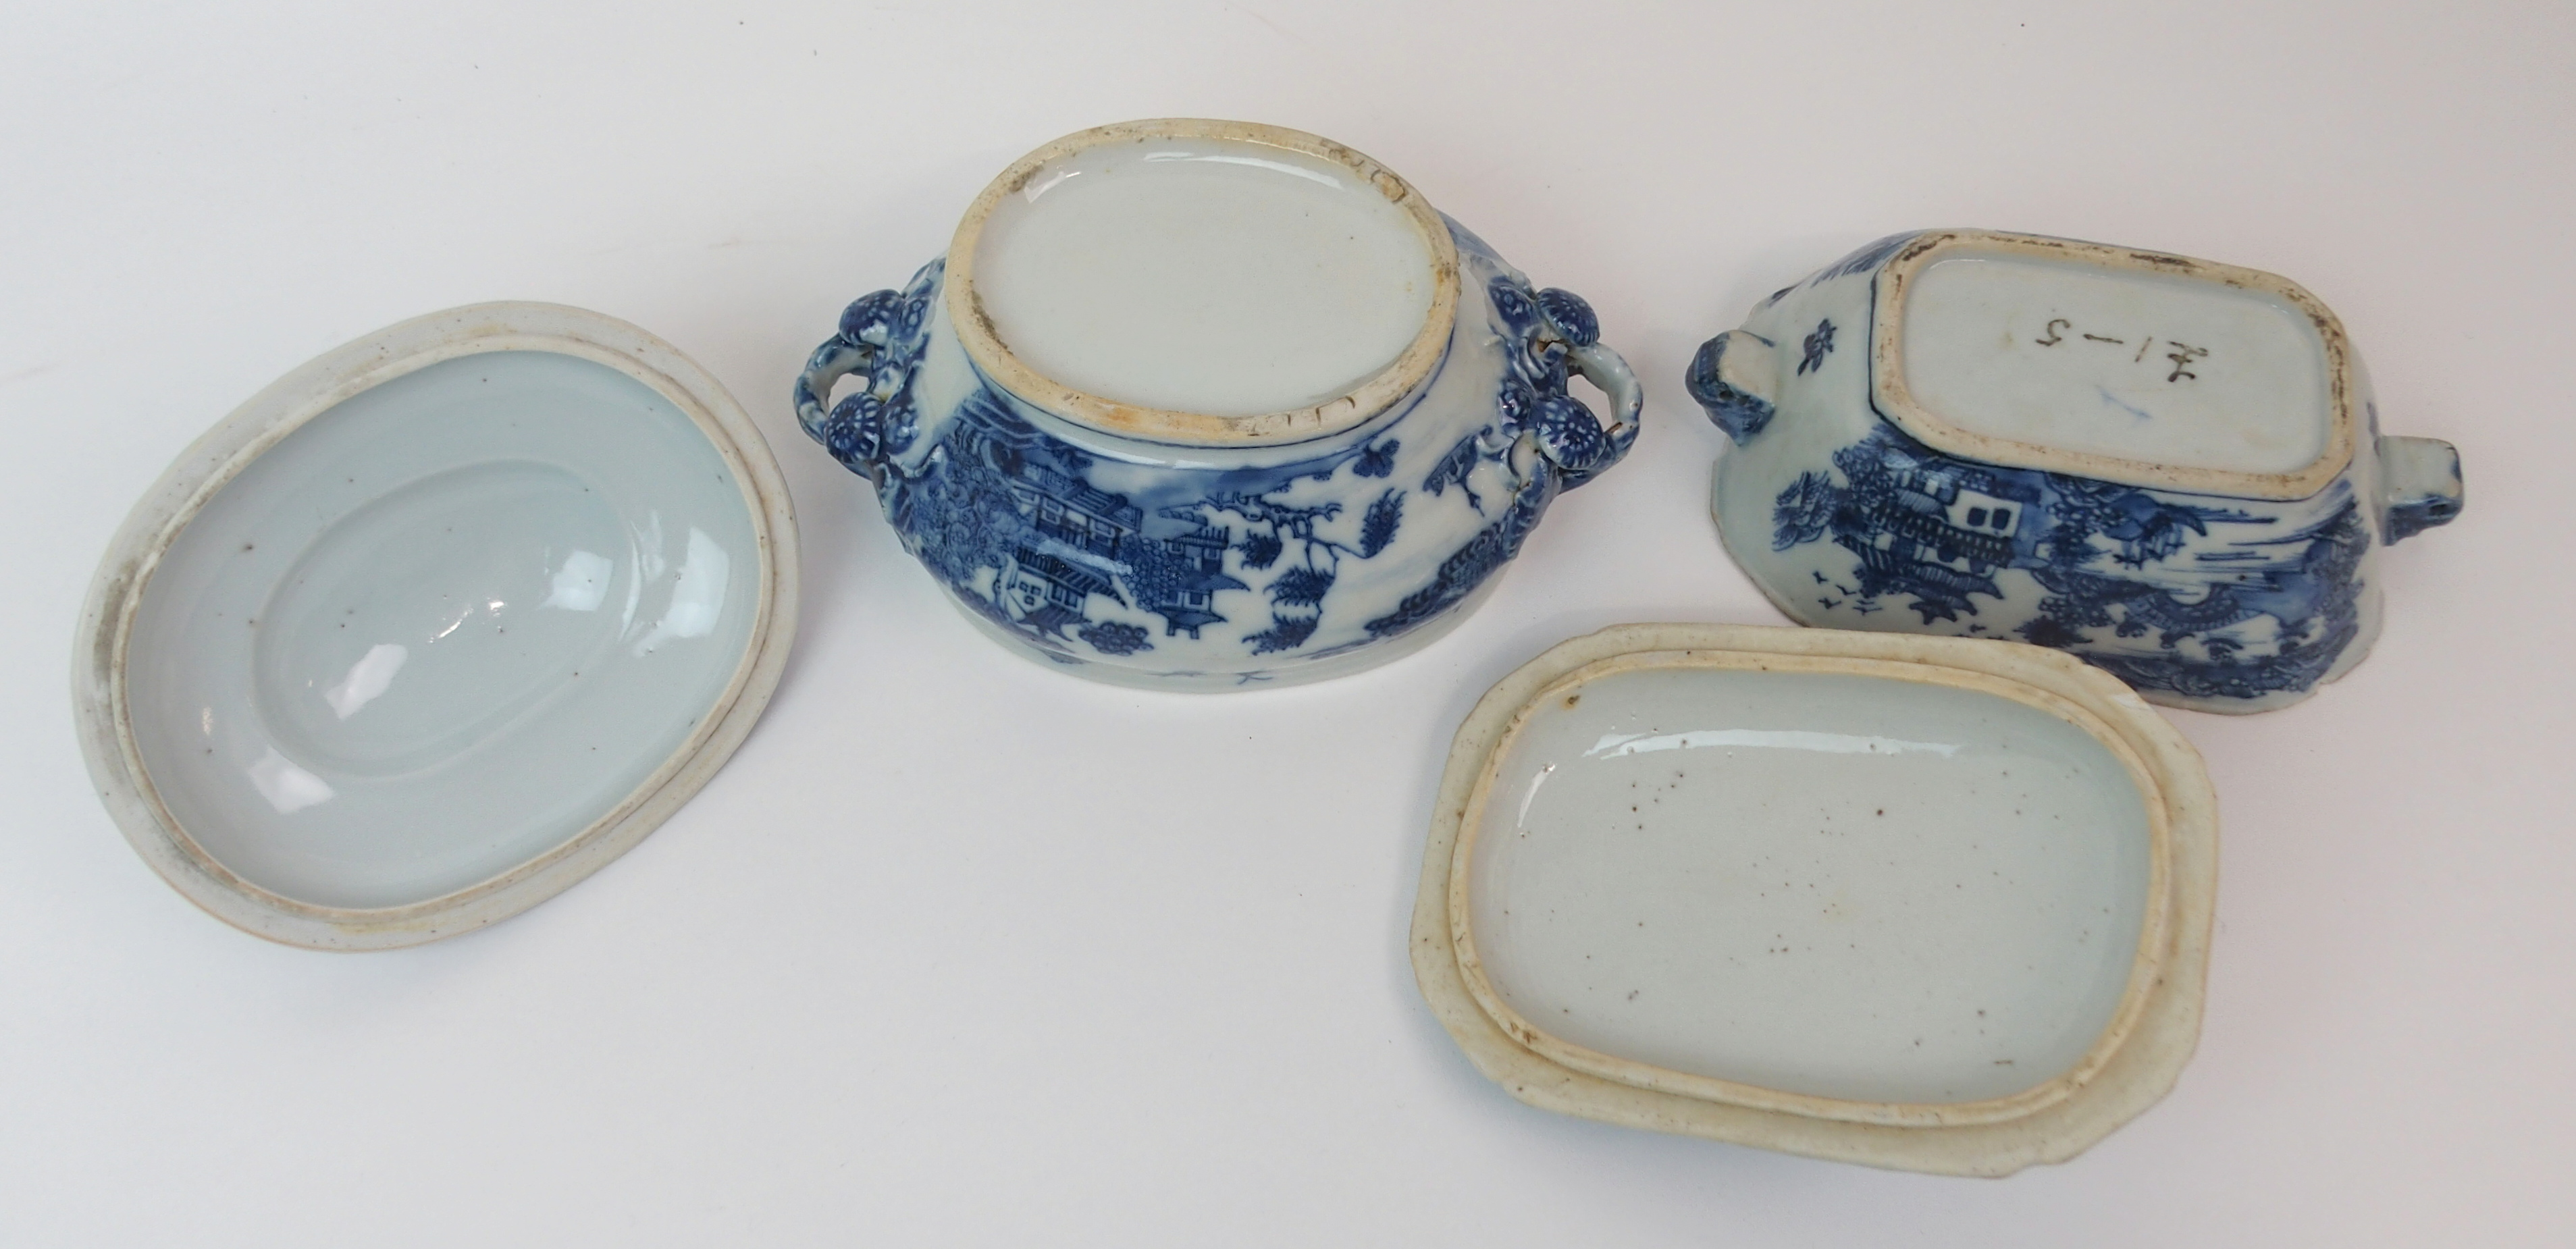 Lot 8 - A CHINESE EXPORT BLUE AND WHITE OCTAGONAL SOUP TUREEN AND COVER painted with pagodas on islands,